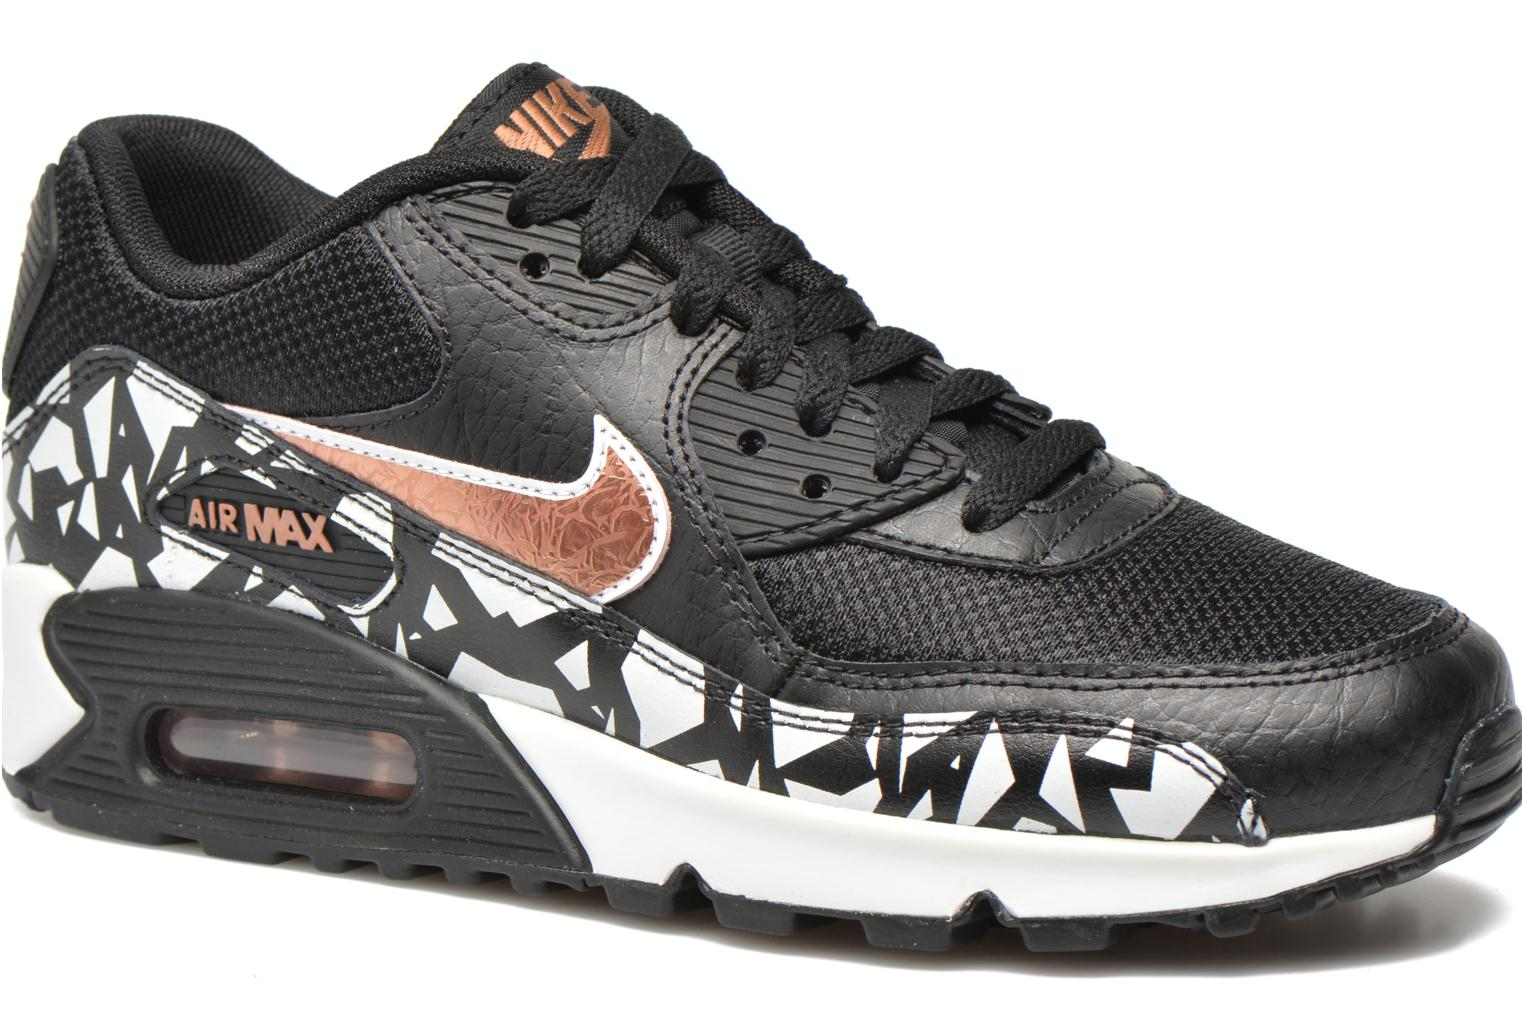 Sneakers AIR MAX 90 FB (GS) by Nike